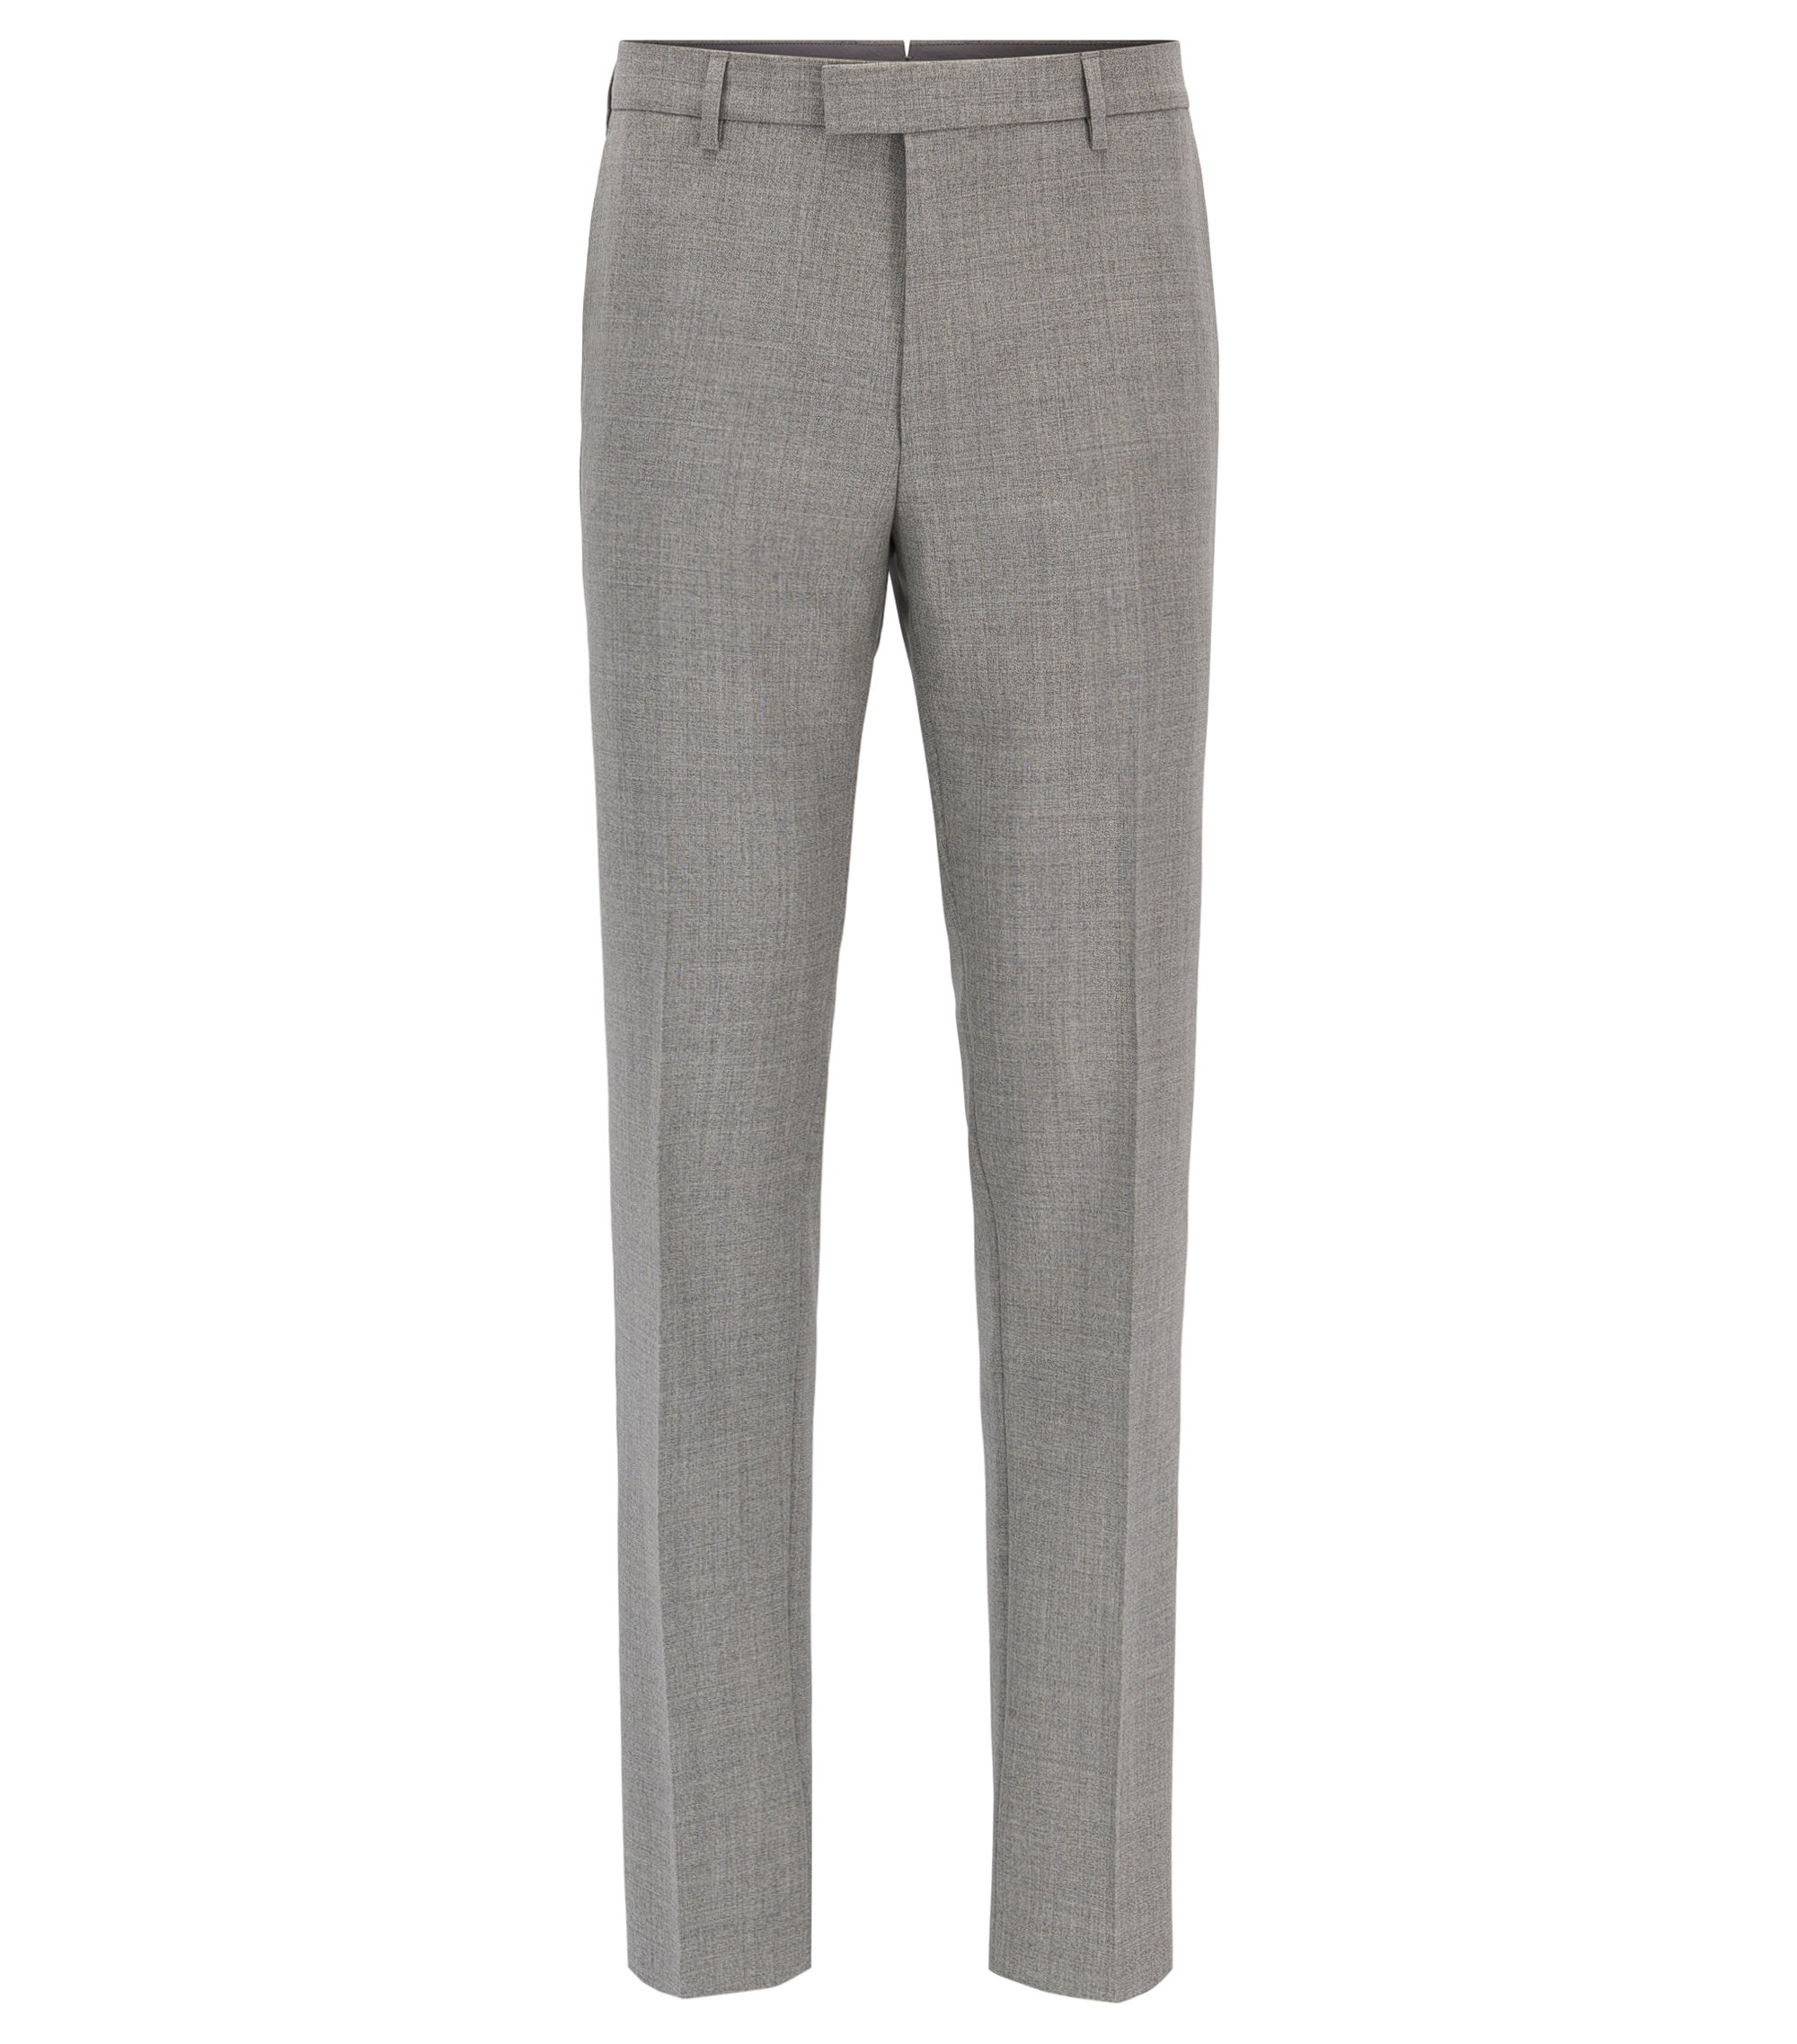 Virgin Wool Dress Pant, Regular Fit | T-Lones, Grey